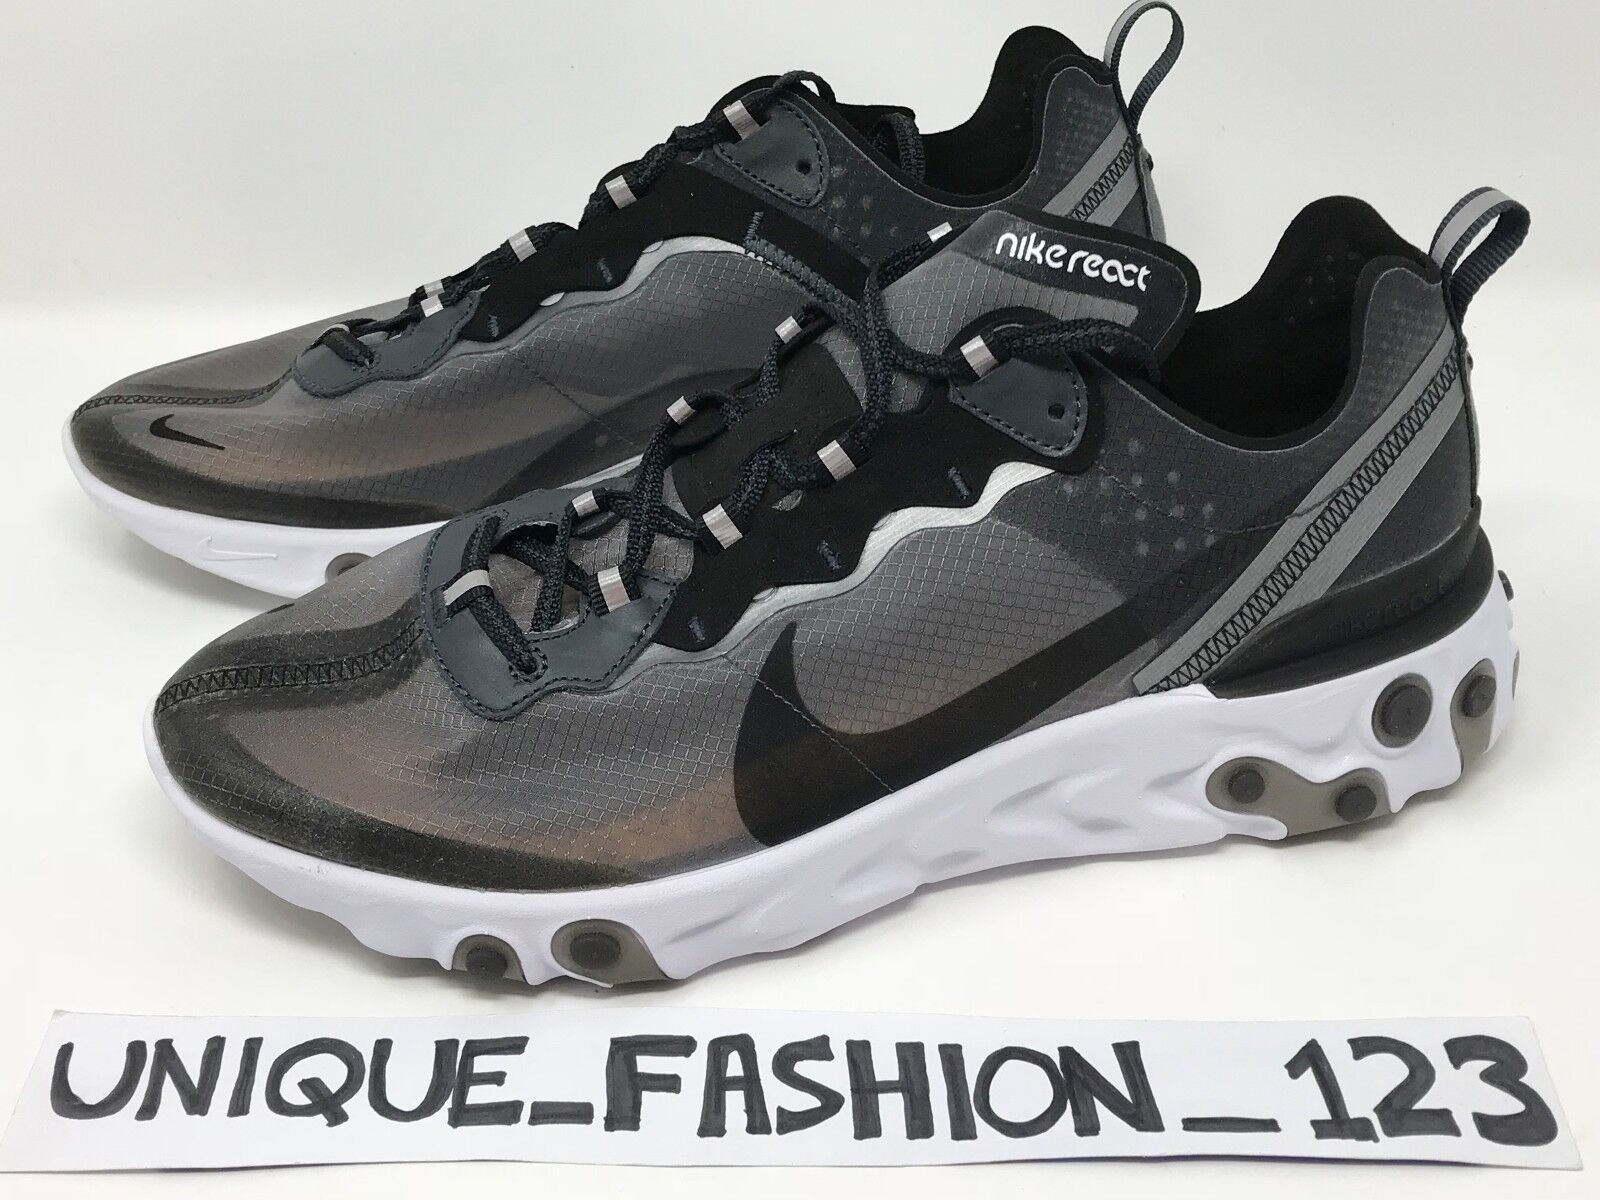 NIKE REACT ELEMENT 87 BLACK OG AQ1090-001 SAIL WHITE